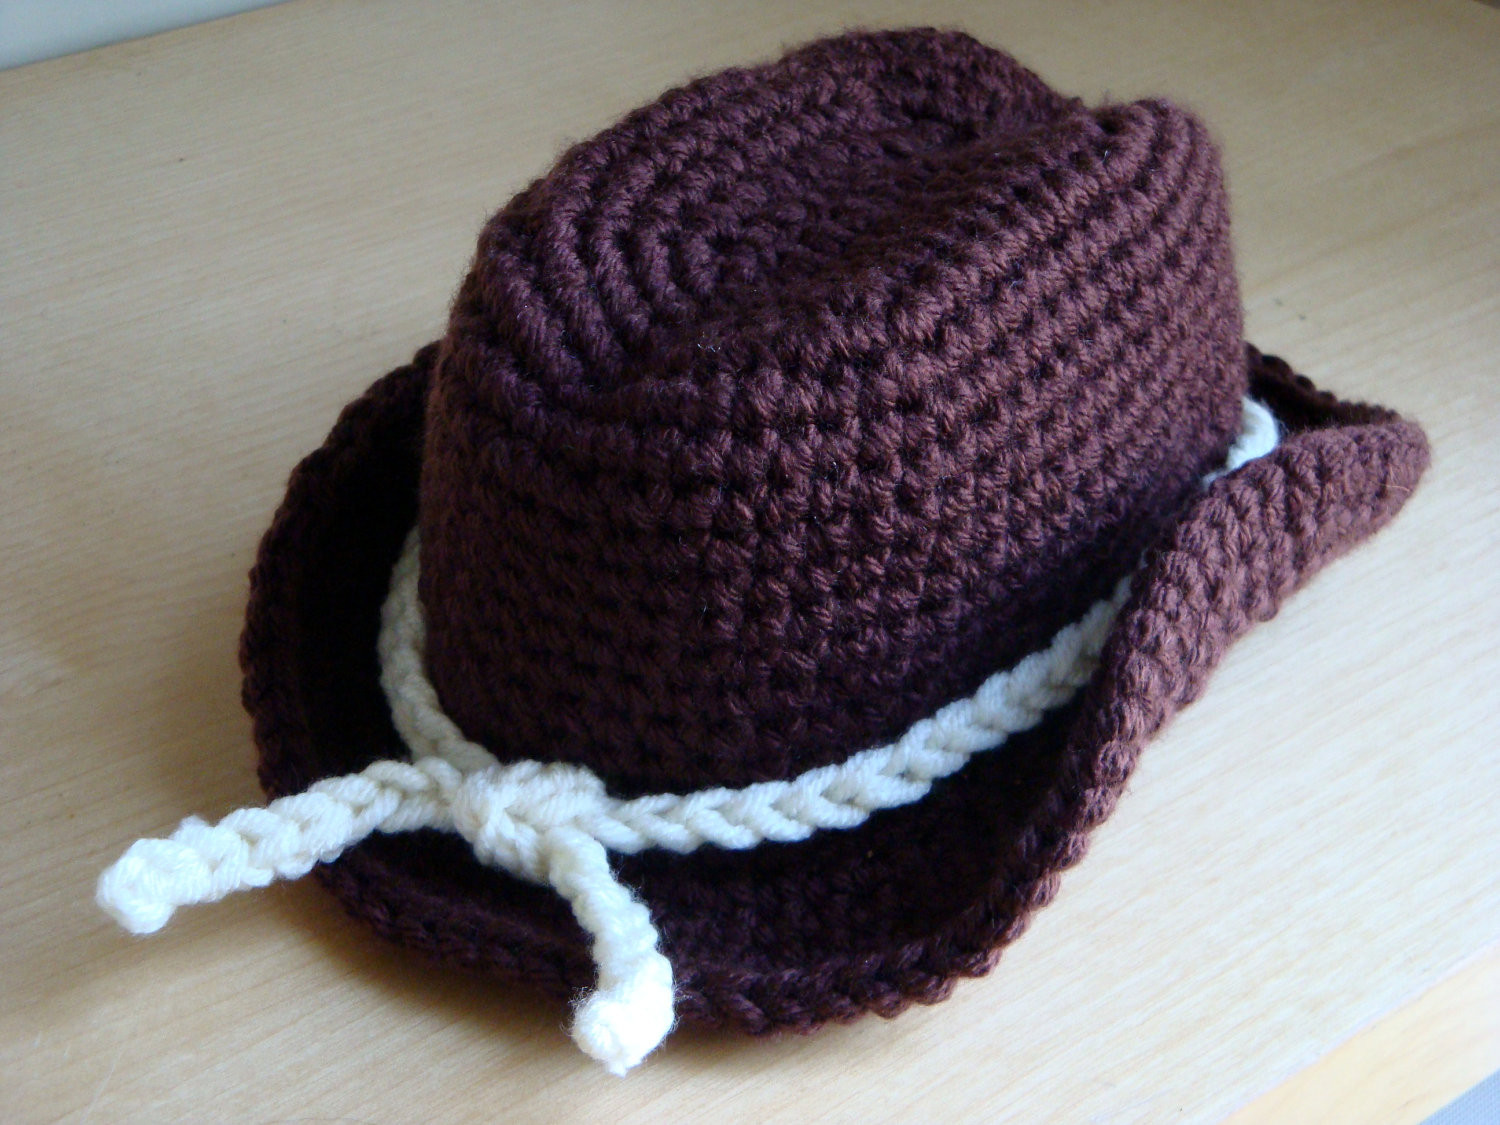 Crochet Baby Cowboy Hat and Boots Pattern Free Awesome 69 Creative Patterns Of Crochet Baby Hats Of Brilliant 40 Ideas Crochet Baby Cowboy Hat and Boots Pattern Free